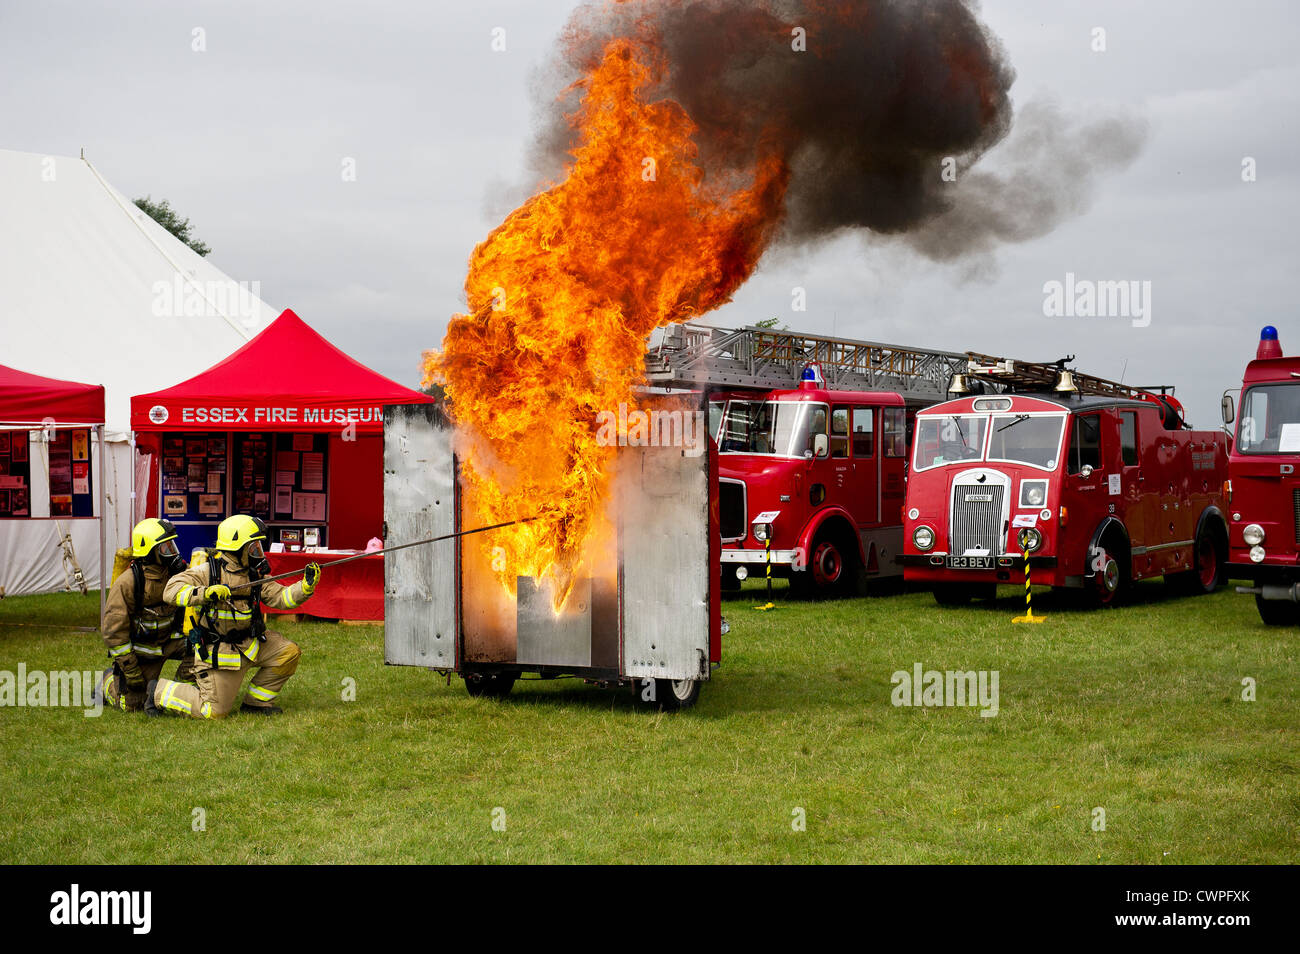 Essex County Fire and Rescue Service - A demonstration by Essex Fire Service of a chip pan fire at the Orsett Show - Stock Image